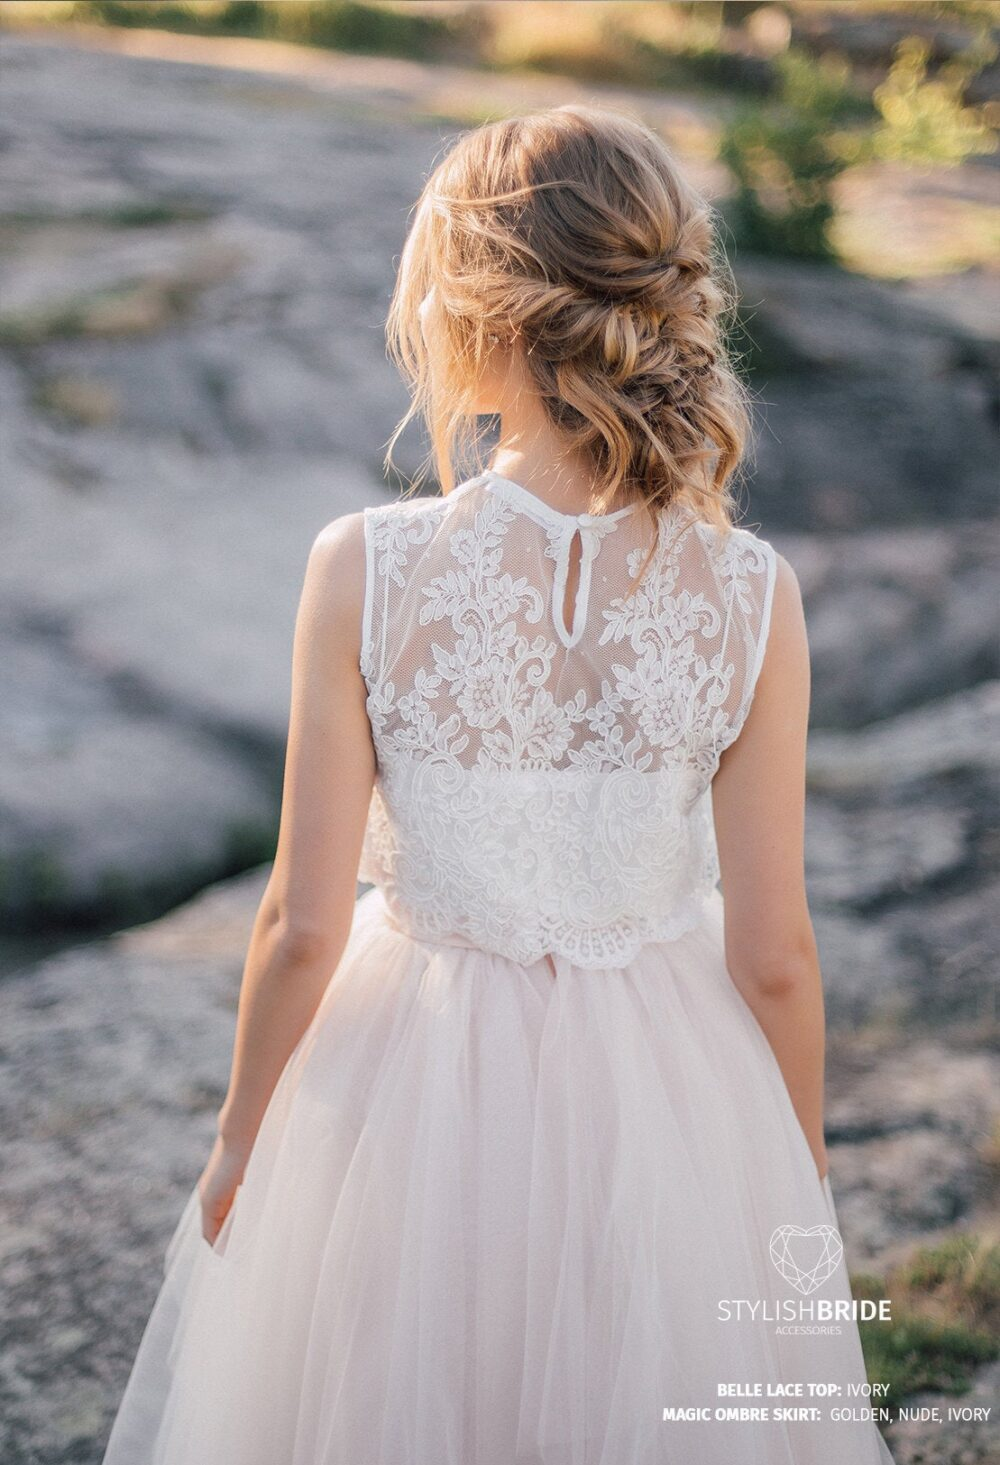 Belle Sleeveless Wedding Lace Crop Top, White Or Ivory Top Tops, Engagement Lace Top Plus Size, Prom Blouse